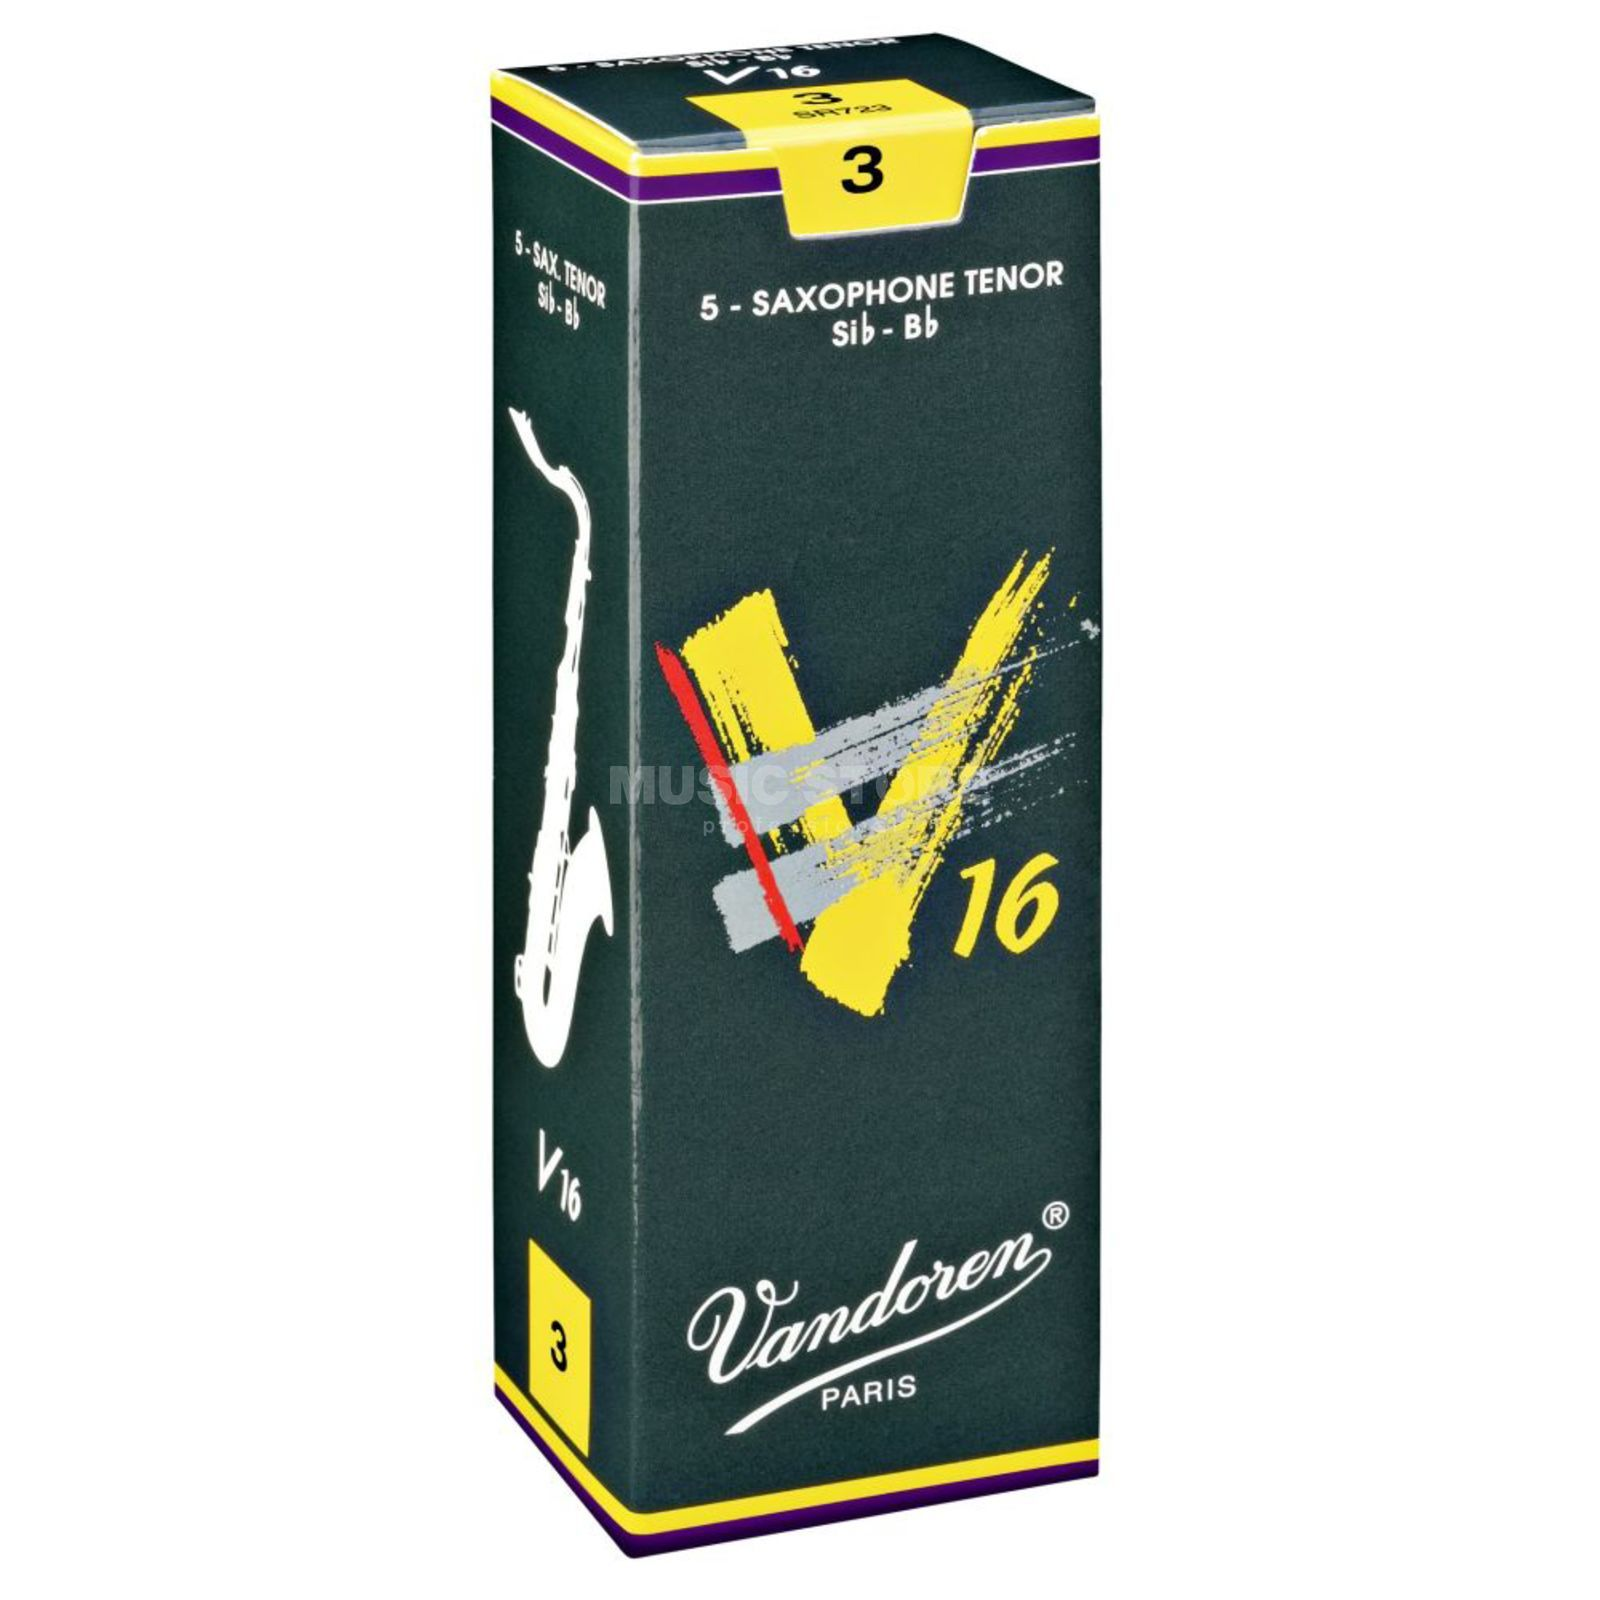 Vandoren V16 Tenor Sax Reeds 3.5 Box of 5 Product Image